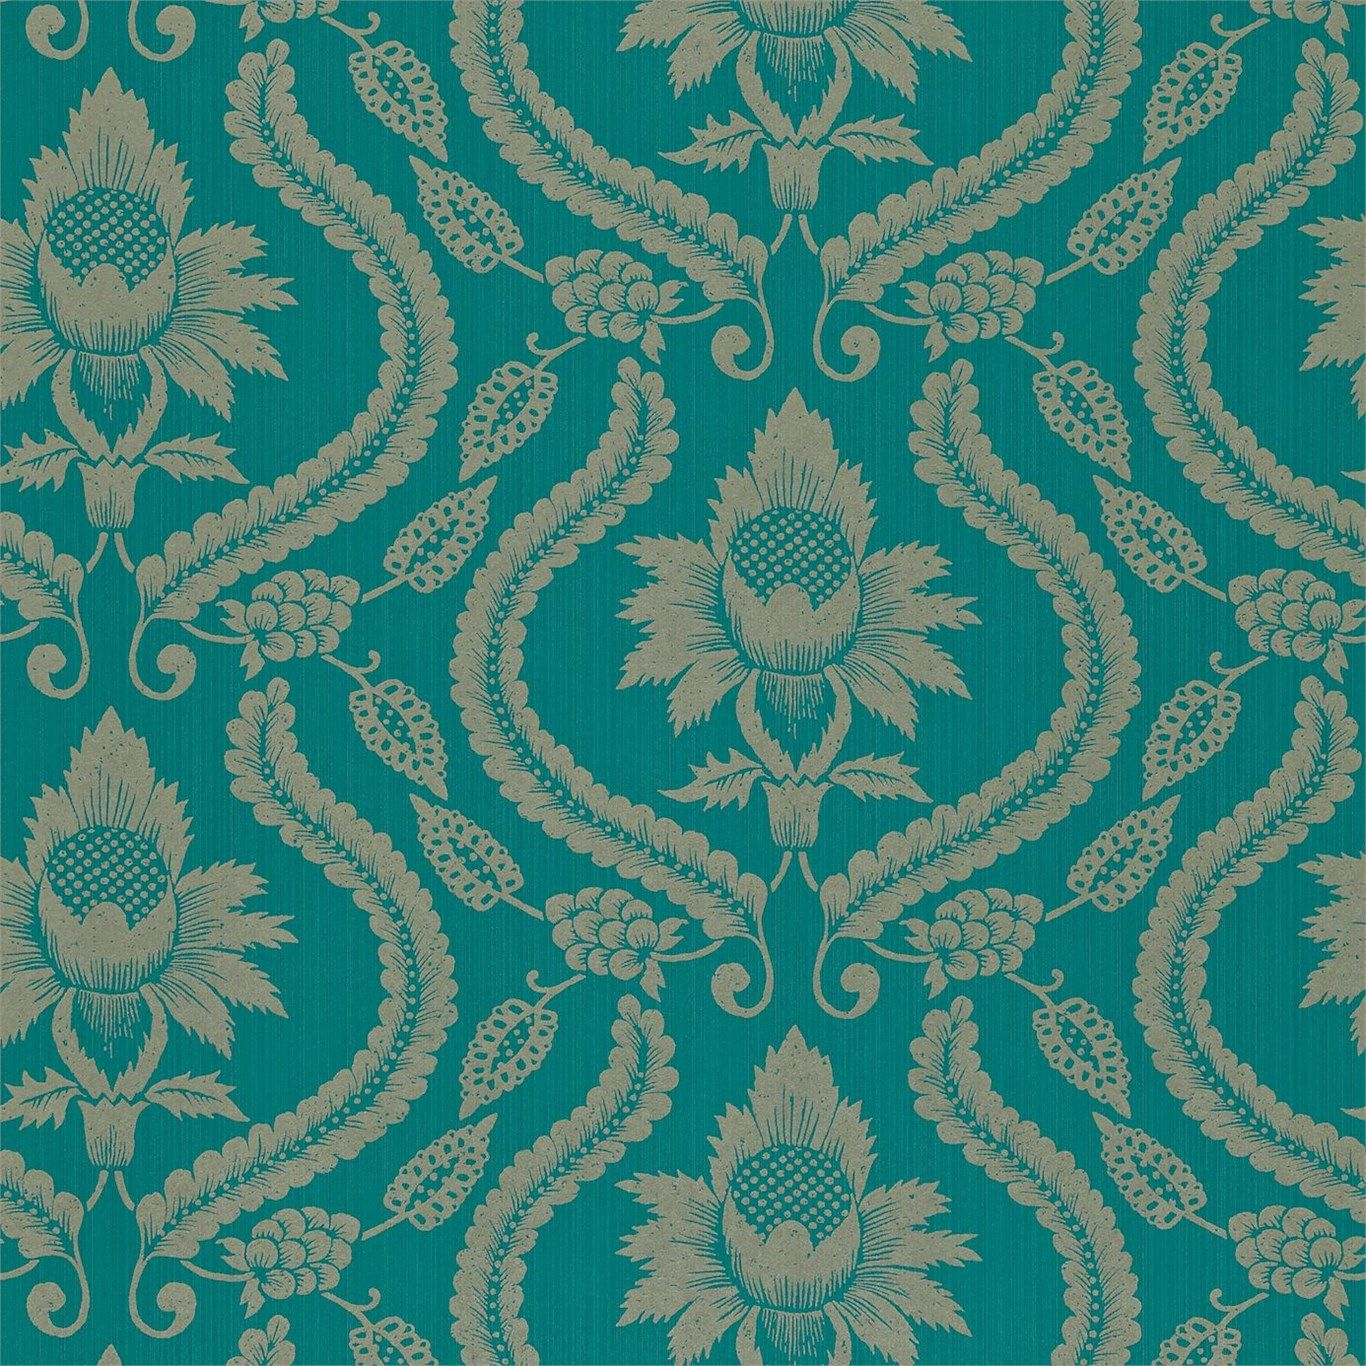 Products harlequin designer fabrics and wallpapers paradise - Find This Pin And More On Wallpaper News By Mtjkkj